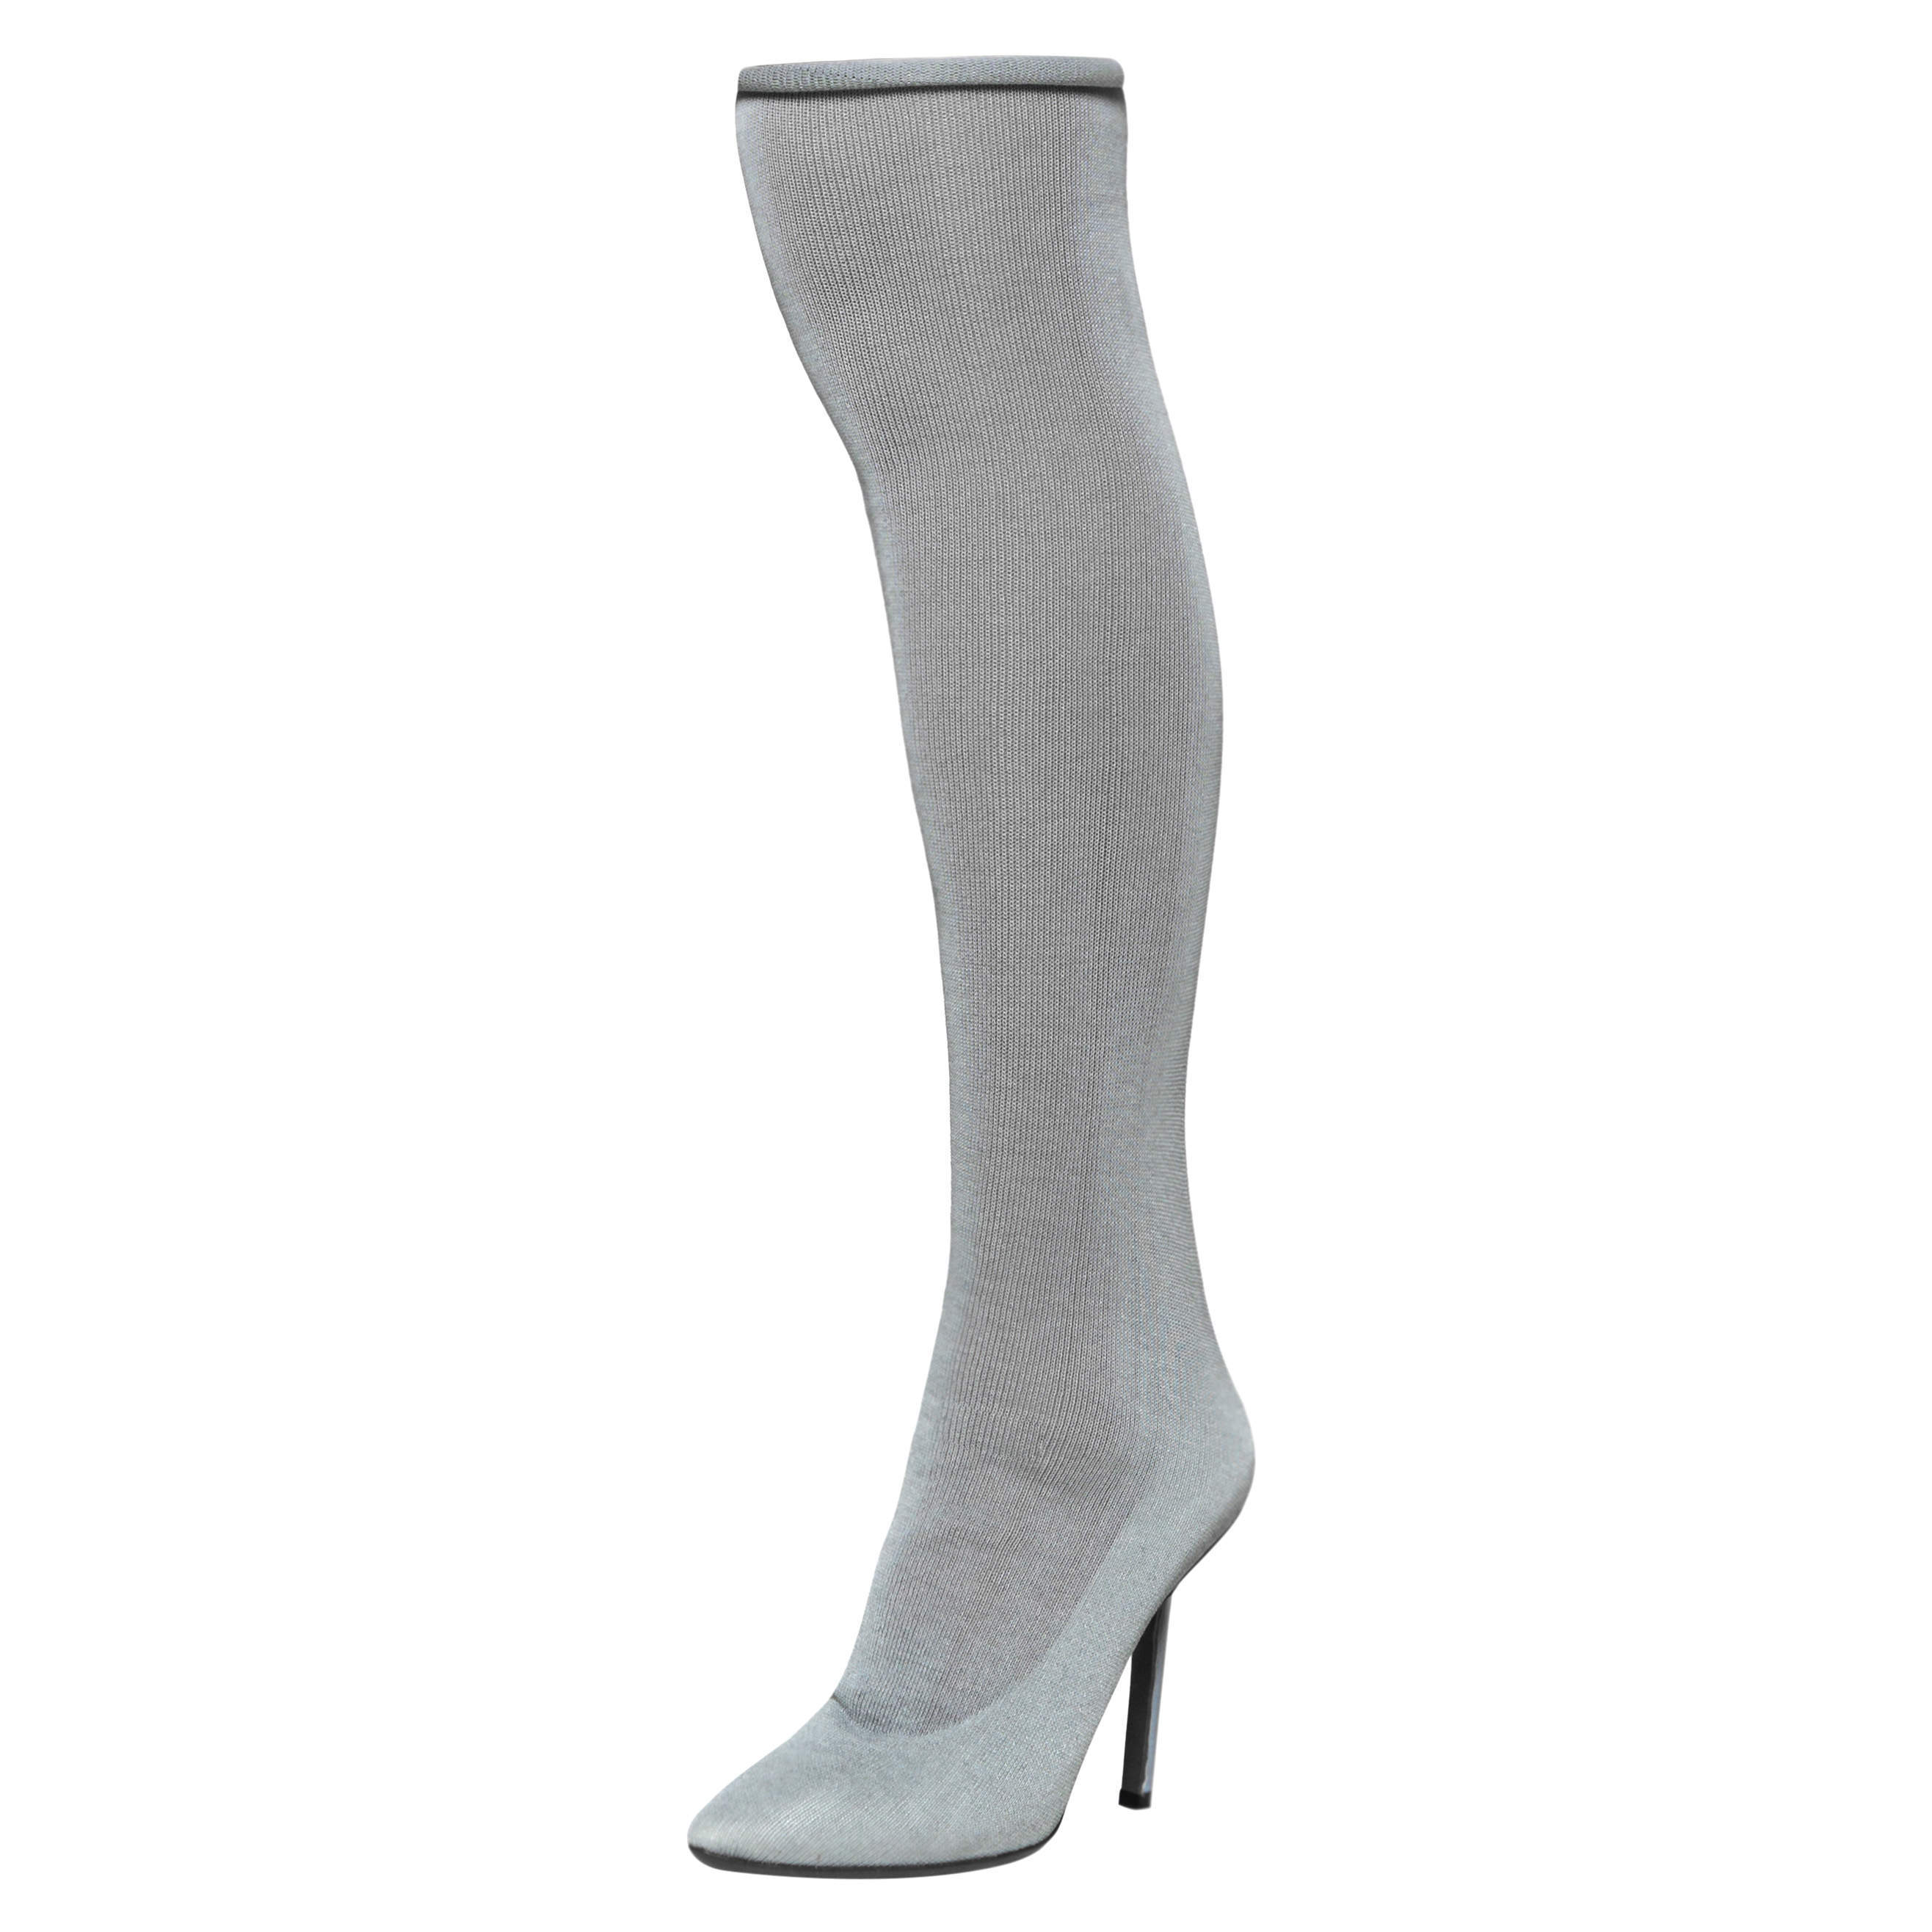 Vetements Grey Stretch Fabric Reflective Thigh High Socks Boots Size 37